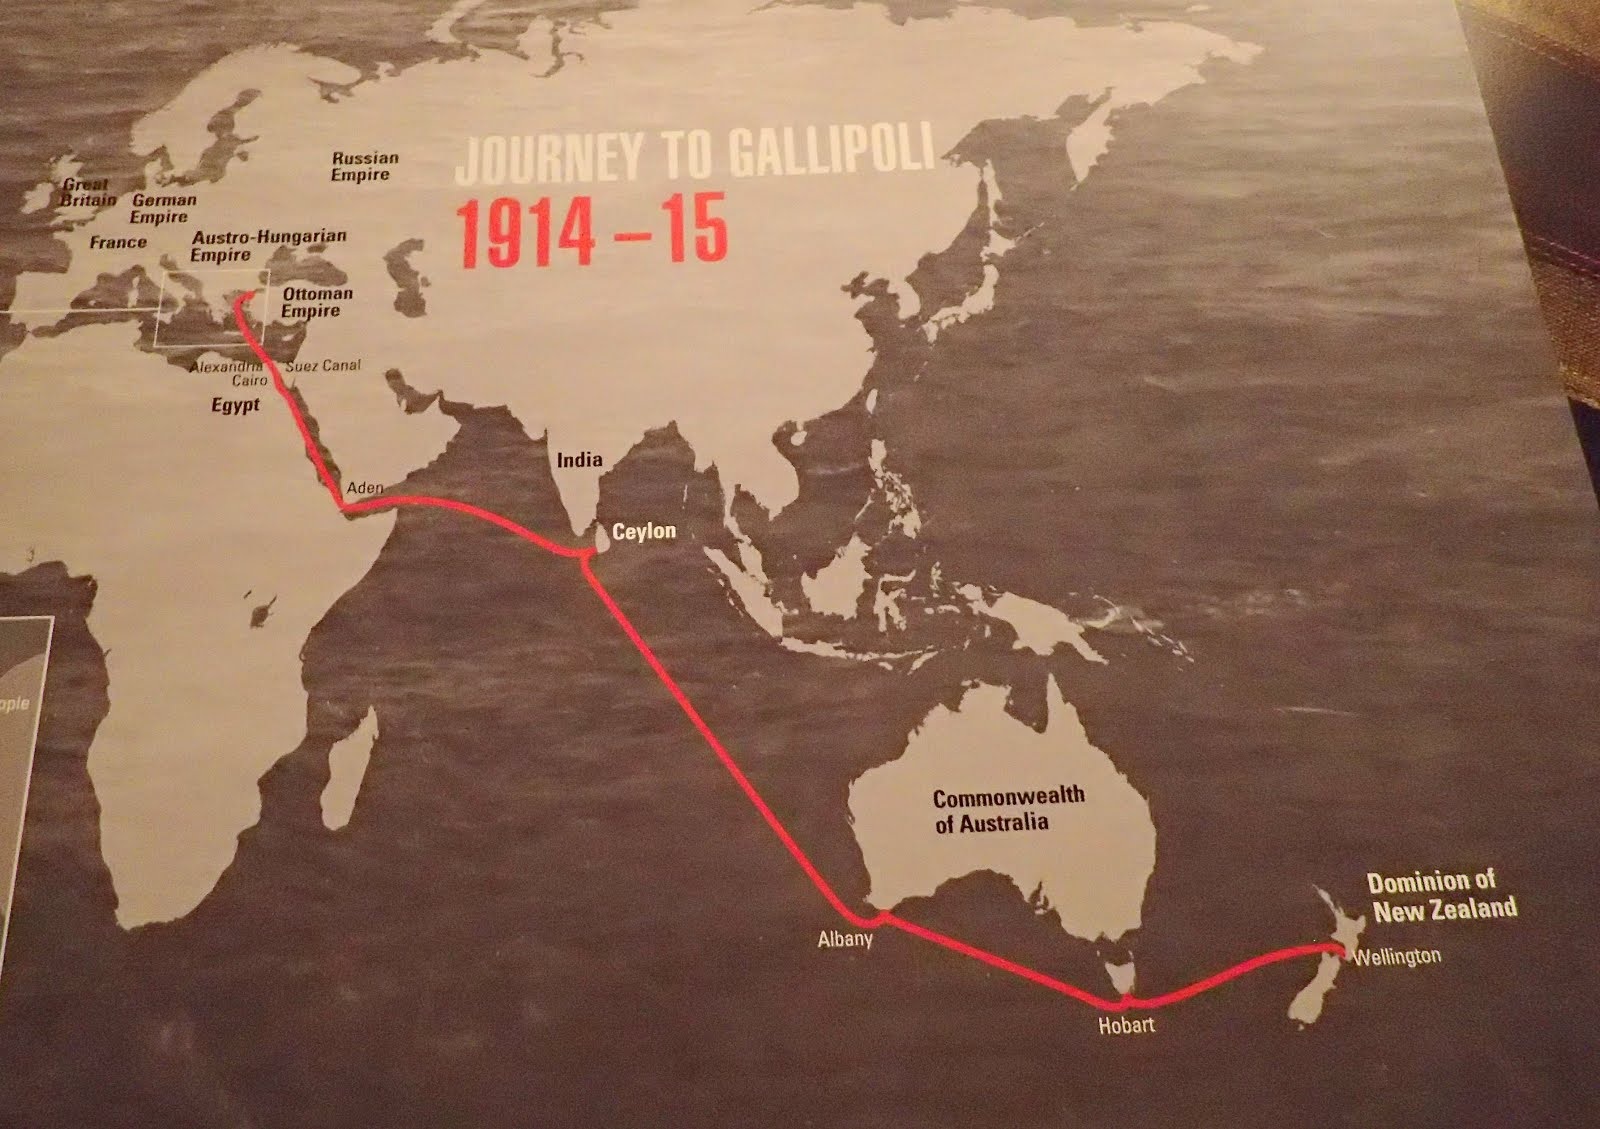 Route of the 1915 ANZAC ships from NZ to Gallipoli